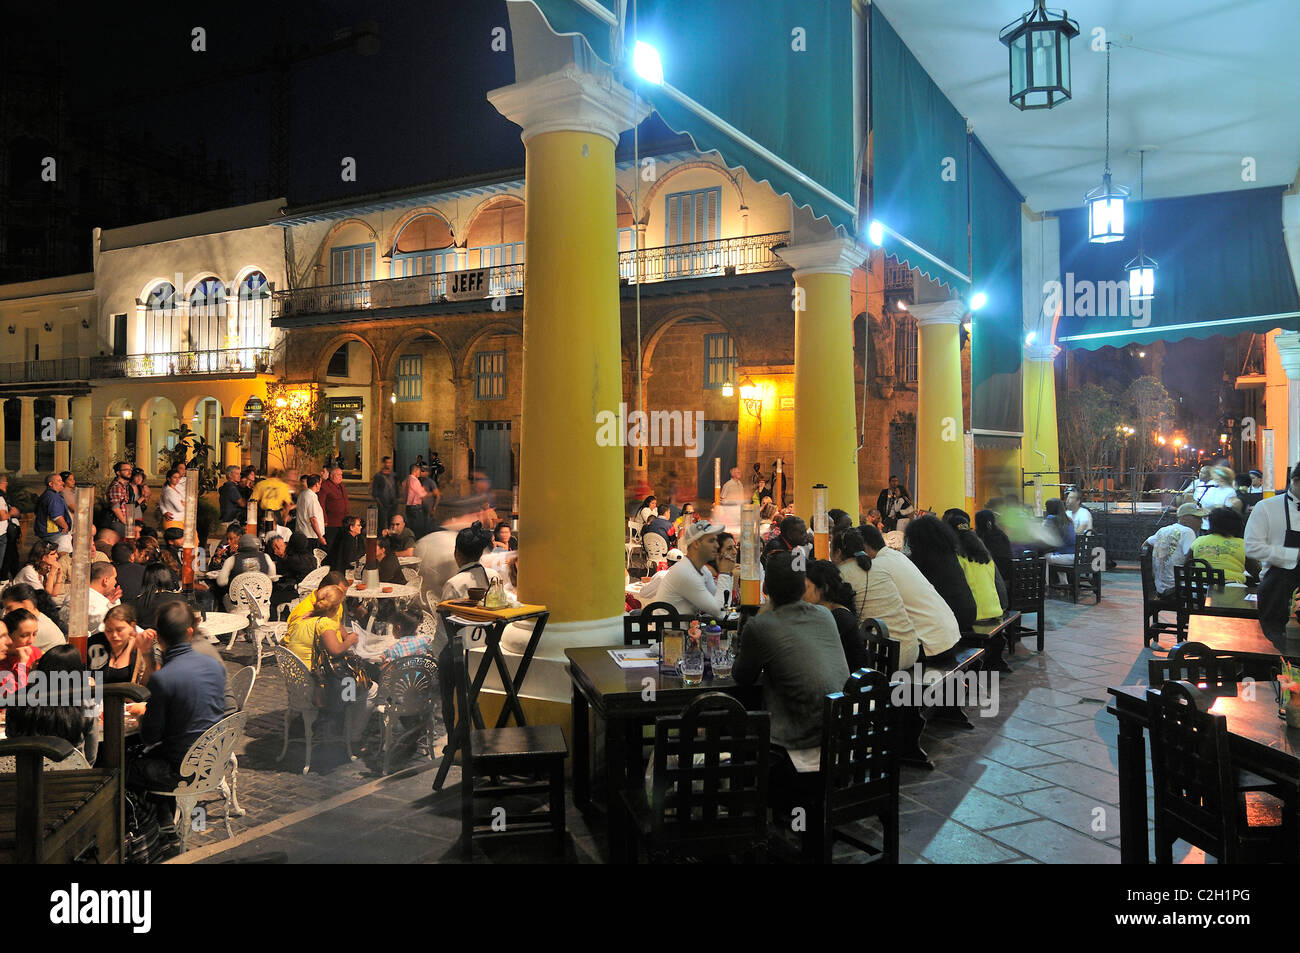 Havana. Cuba. Restaurant & Beer hall Factoria on Plaza Vieja, Habana Vieja / Old Havana. - Stock Image